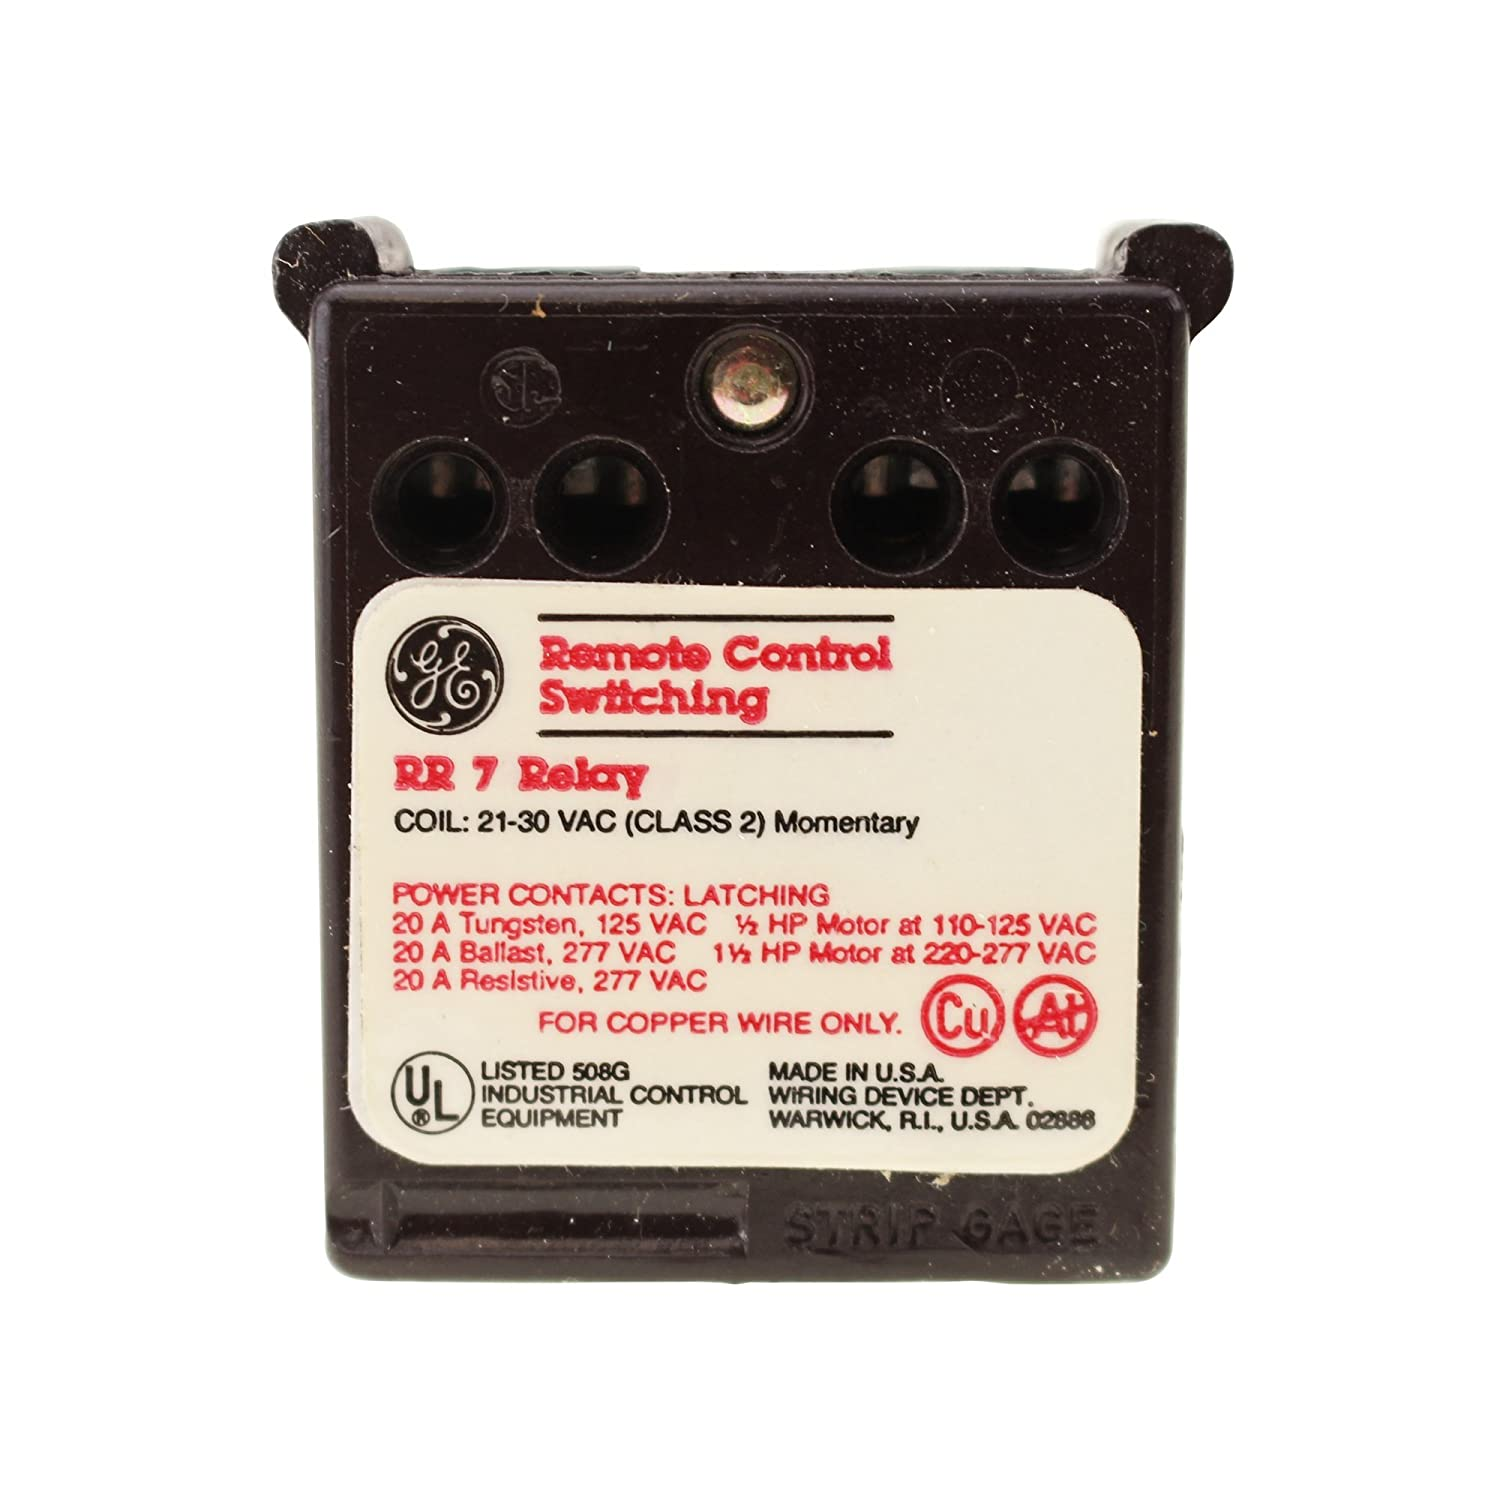 GENERAL ELECTRIC GE RR7 REMOTE CONTROL 21-30V-AC RELAY ... on